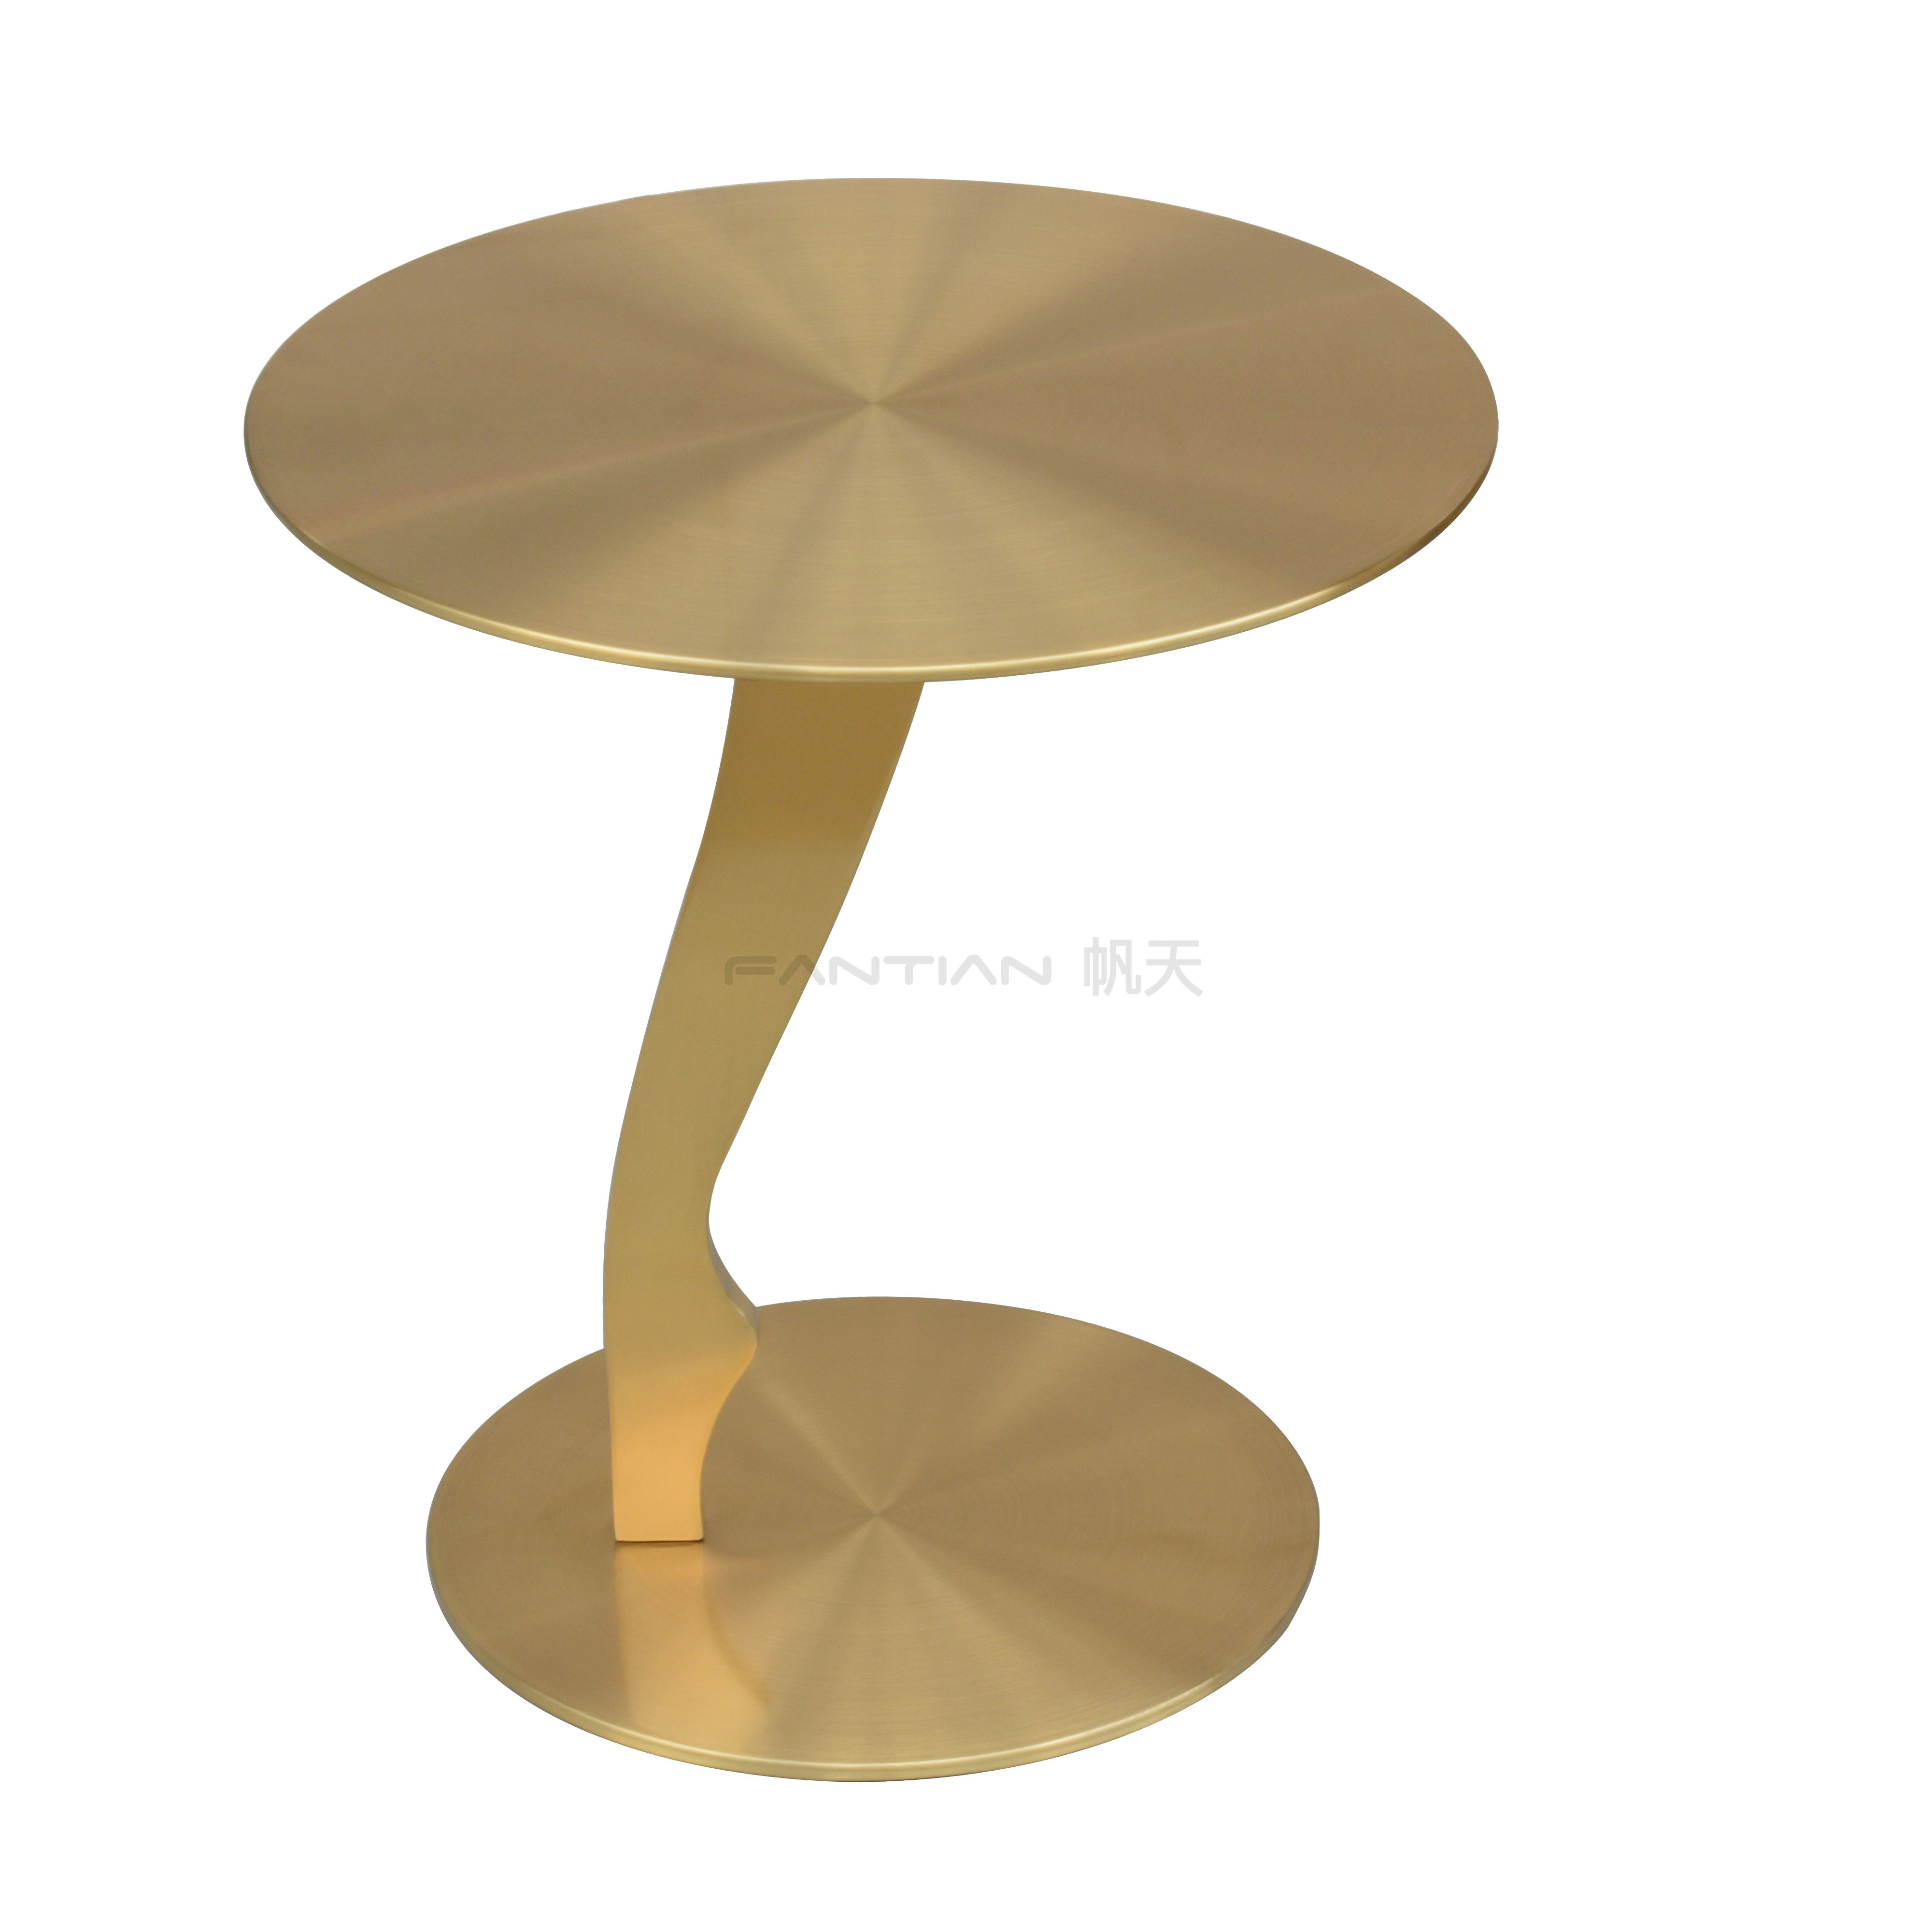 2020 Novel Design Side Table Stainless Steel With Round Base For Hotel Furniture